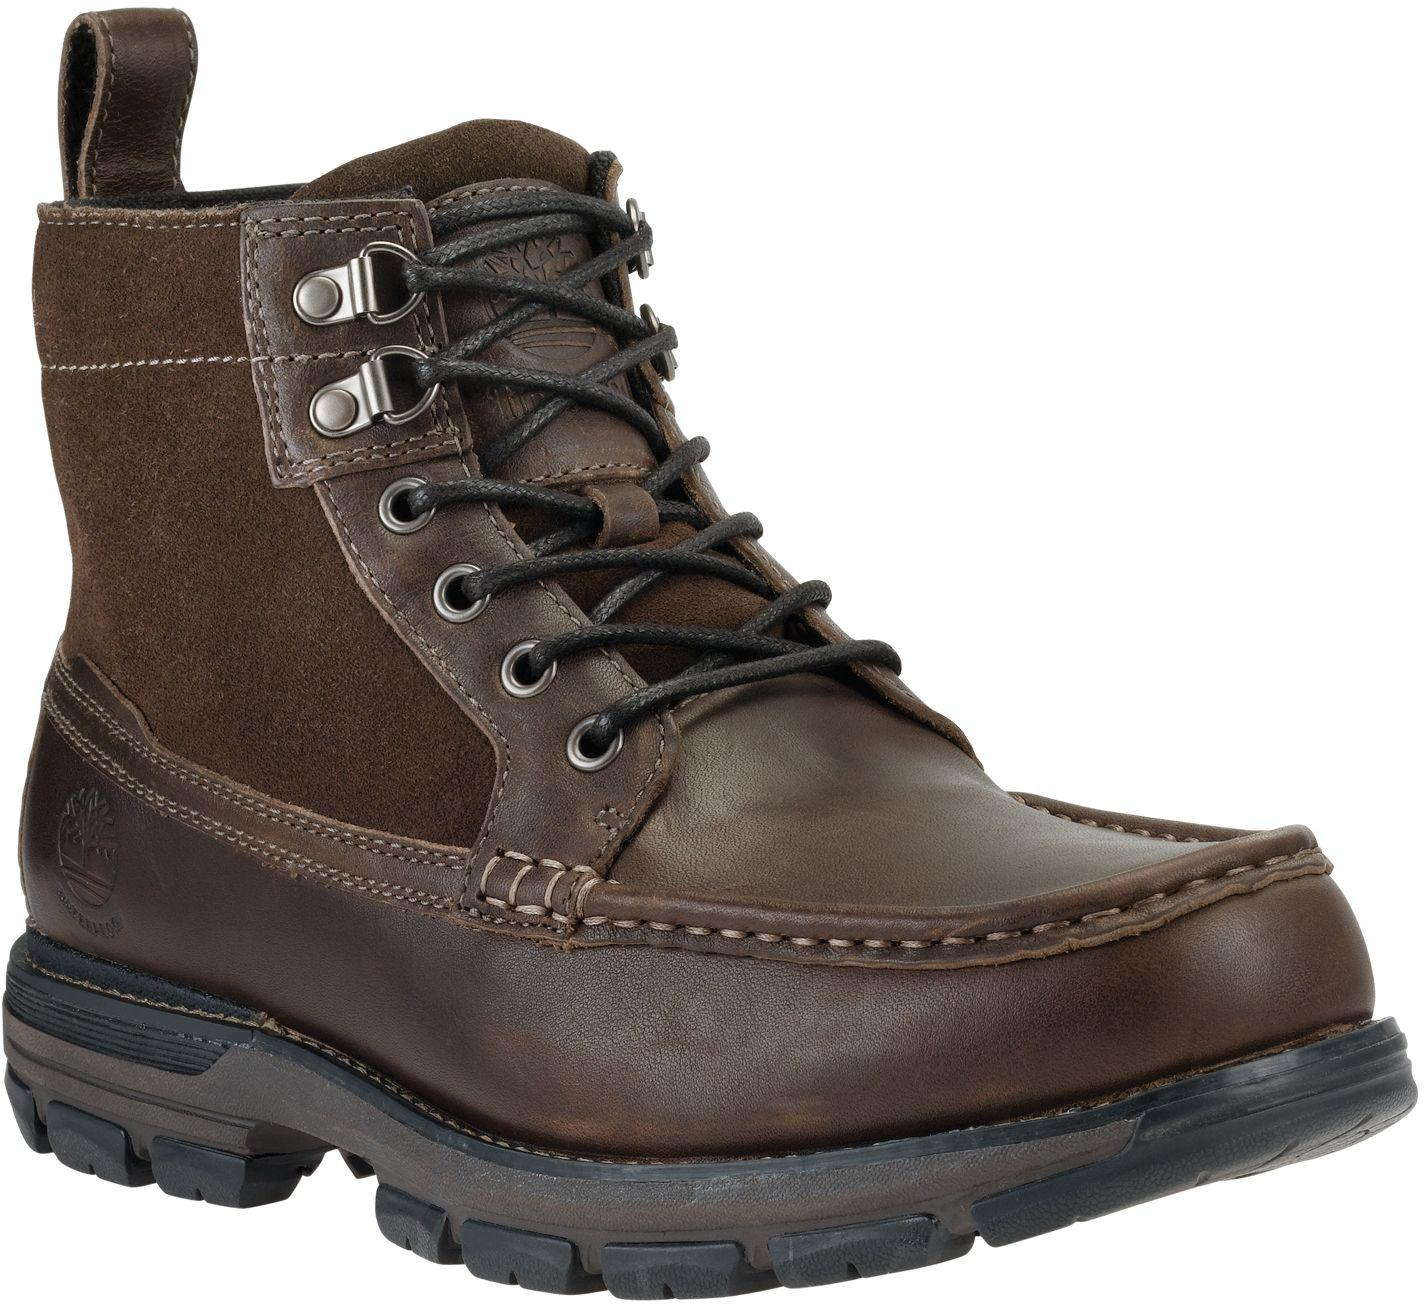 7885b1092a6a8 Lyst - Timberland Heston Mid Waterproof Hiking Boots in Brown for Men